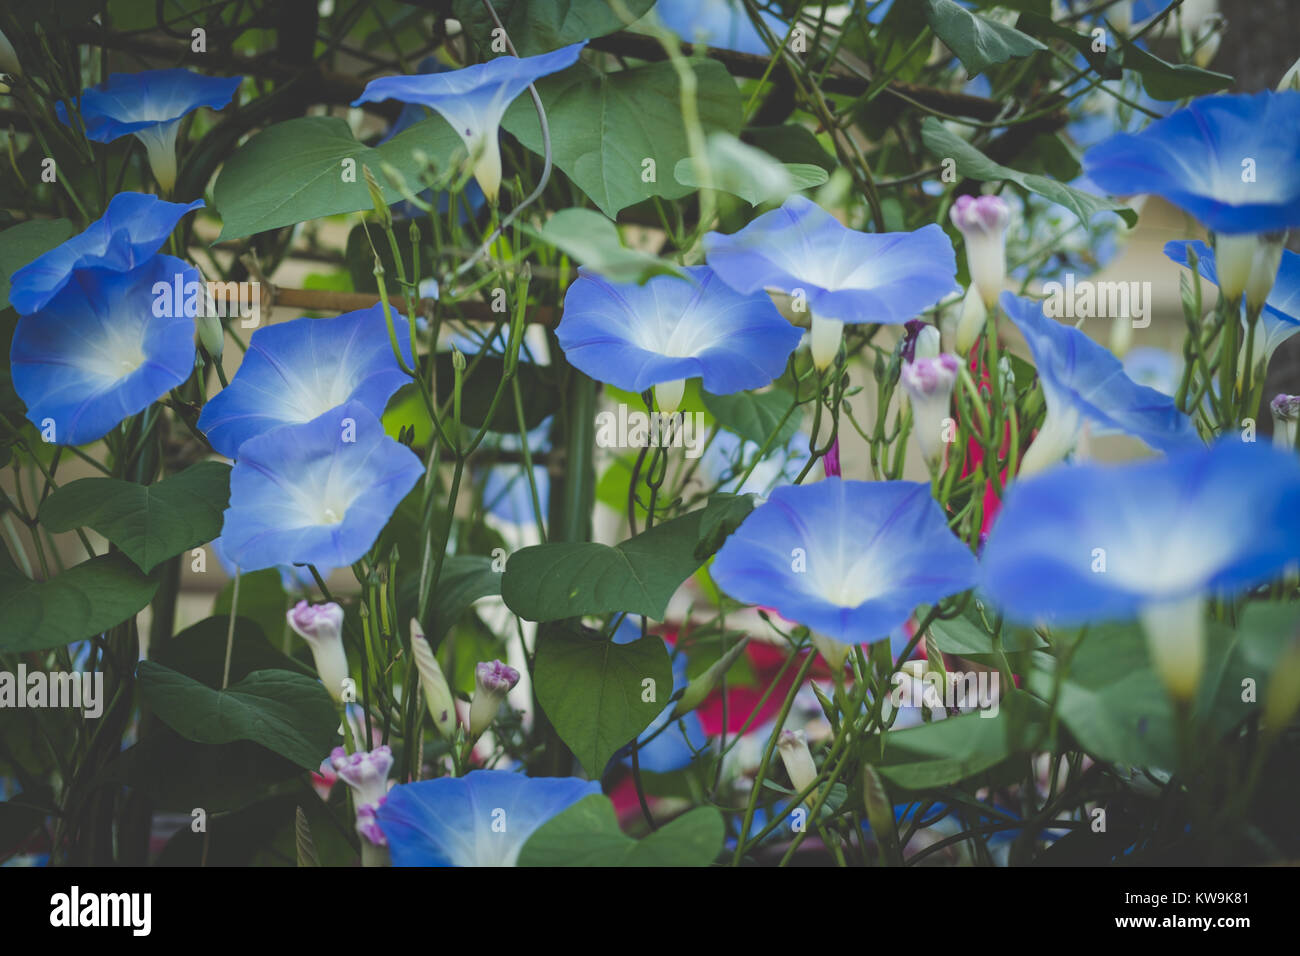 morning glory. blooming flower in garden. blue flora with vine leaves Stock Photo